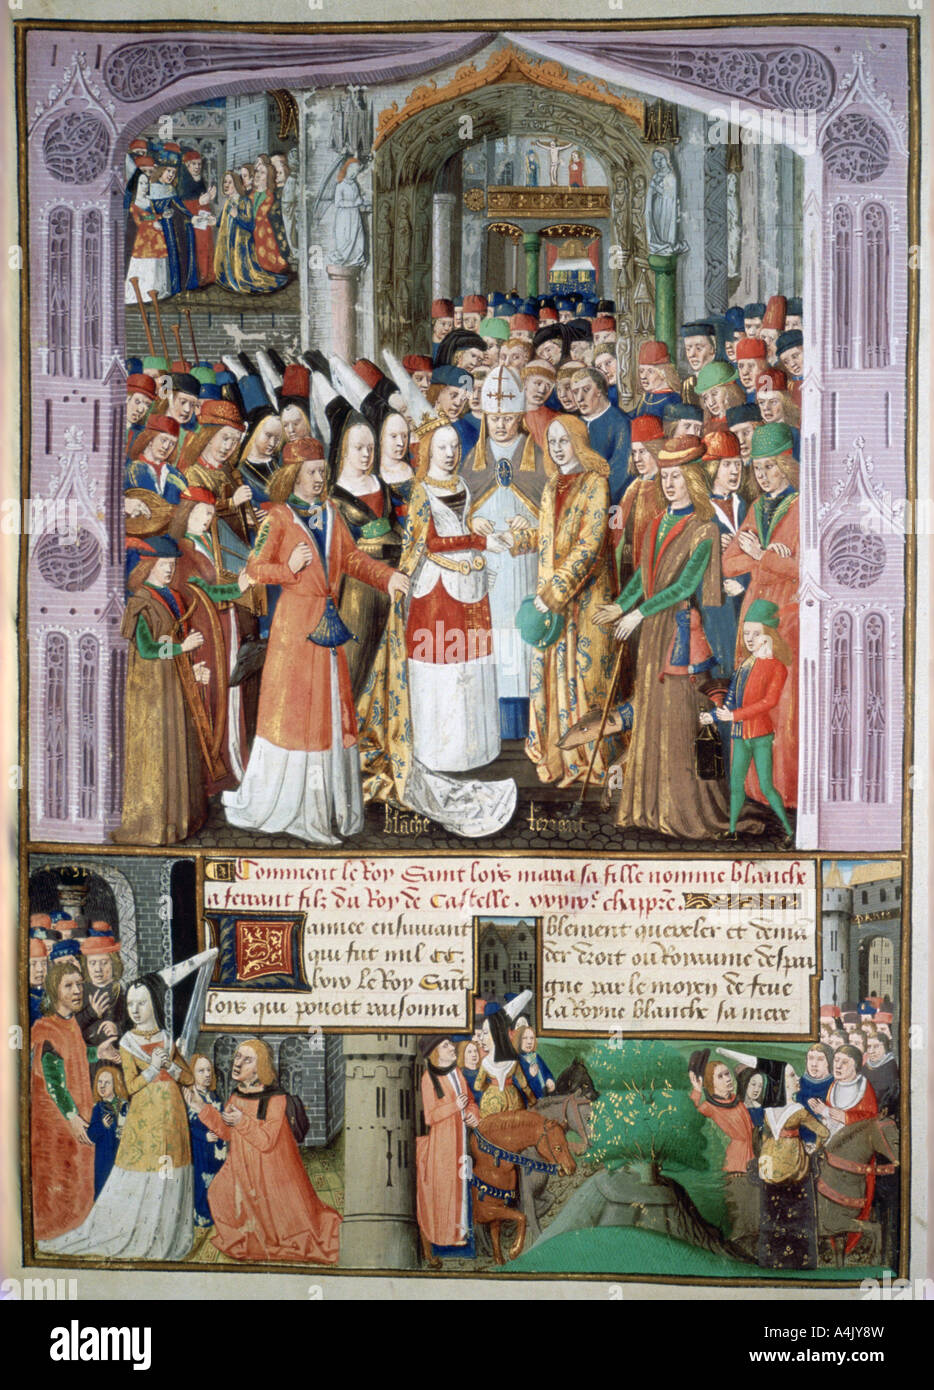 15th century marriage In sixteenth century england, most marriages were arranged, not by the two people getting married, but by their parents and other relatives   over the next two centuries, these understandings of marriage and family would change.